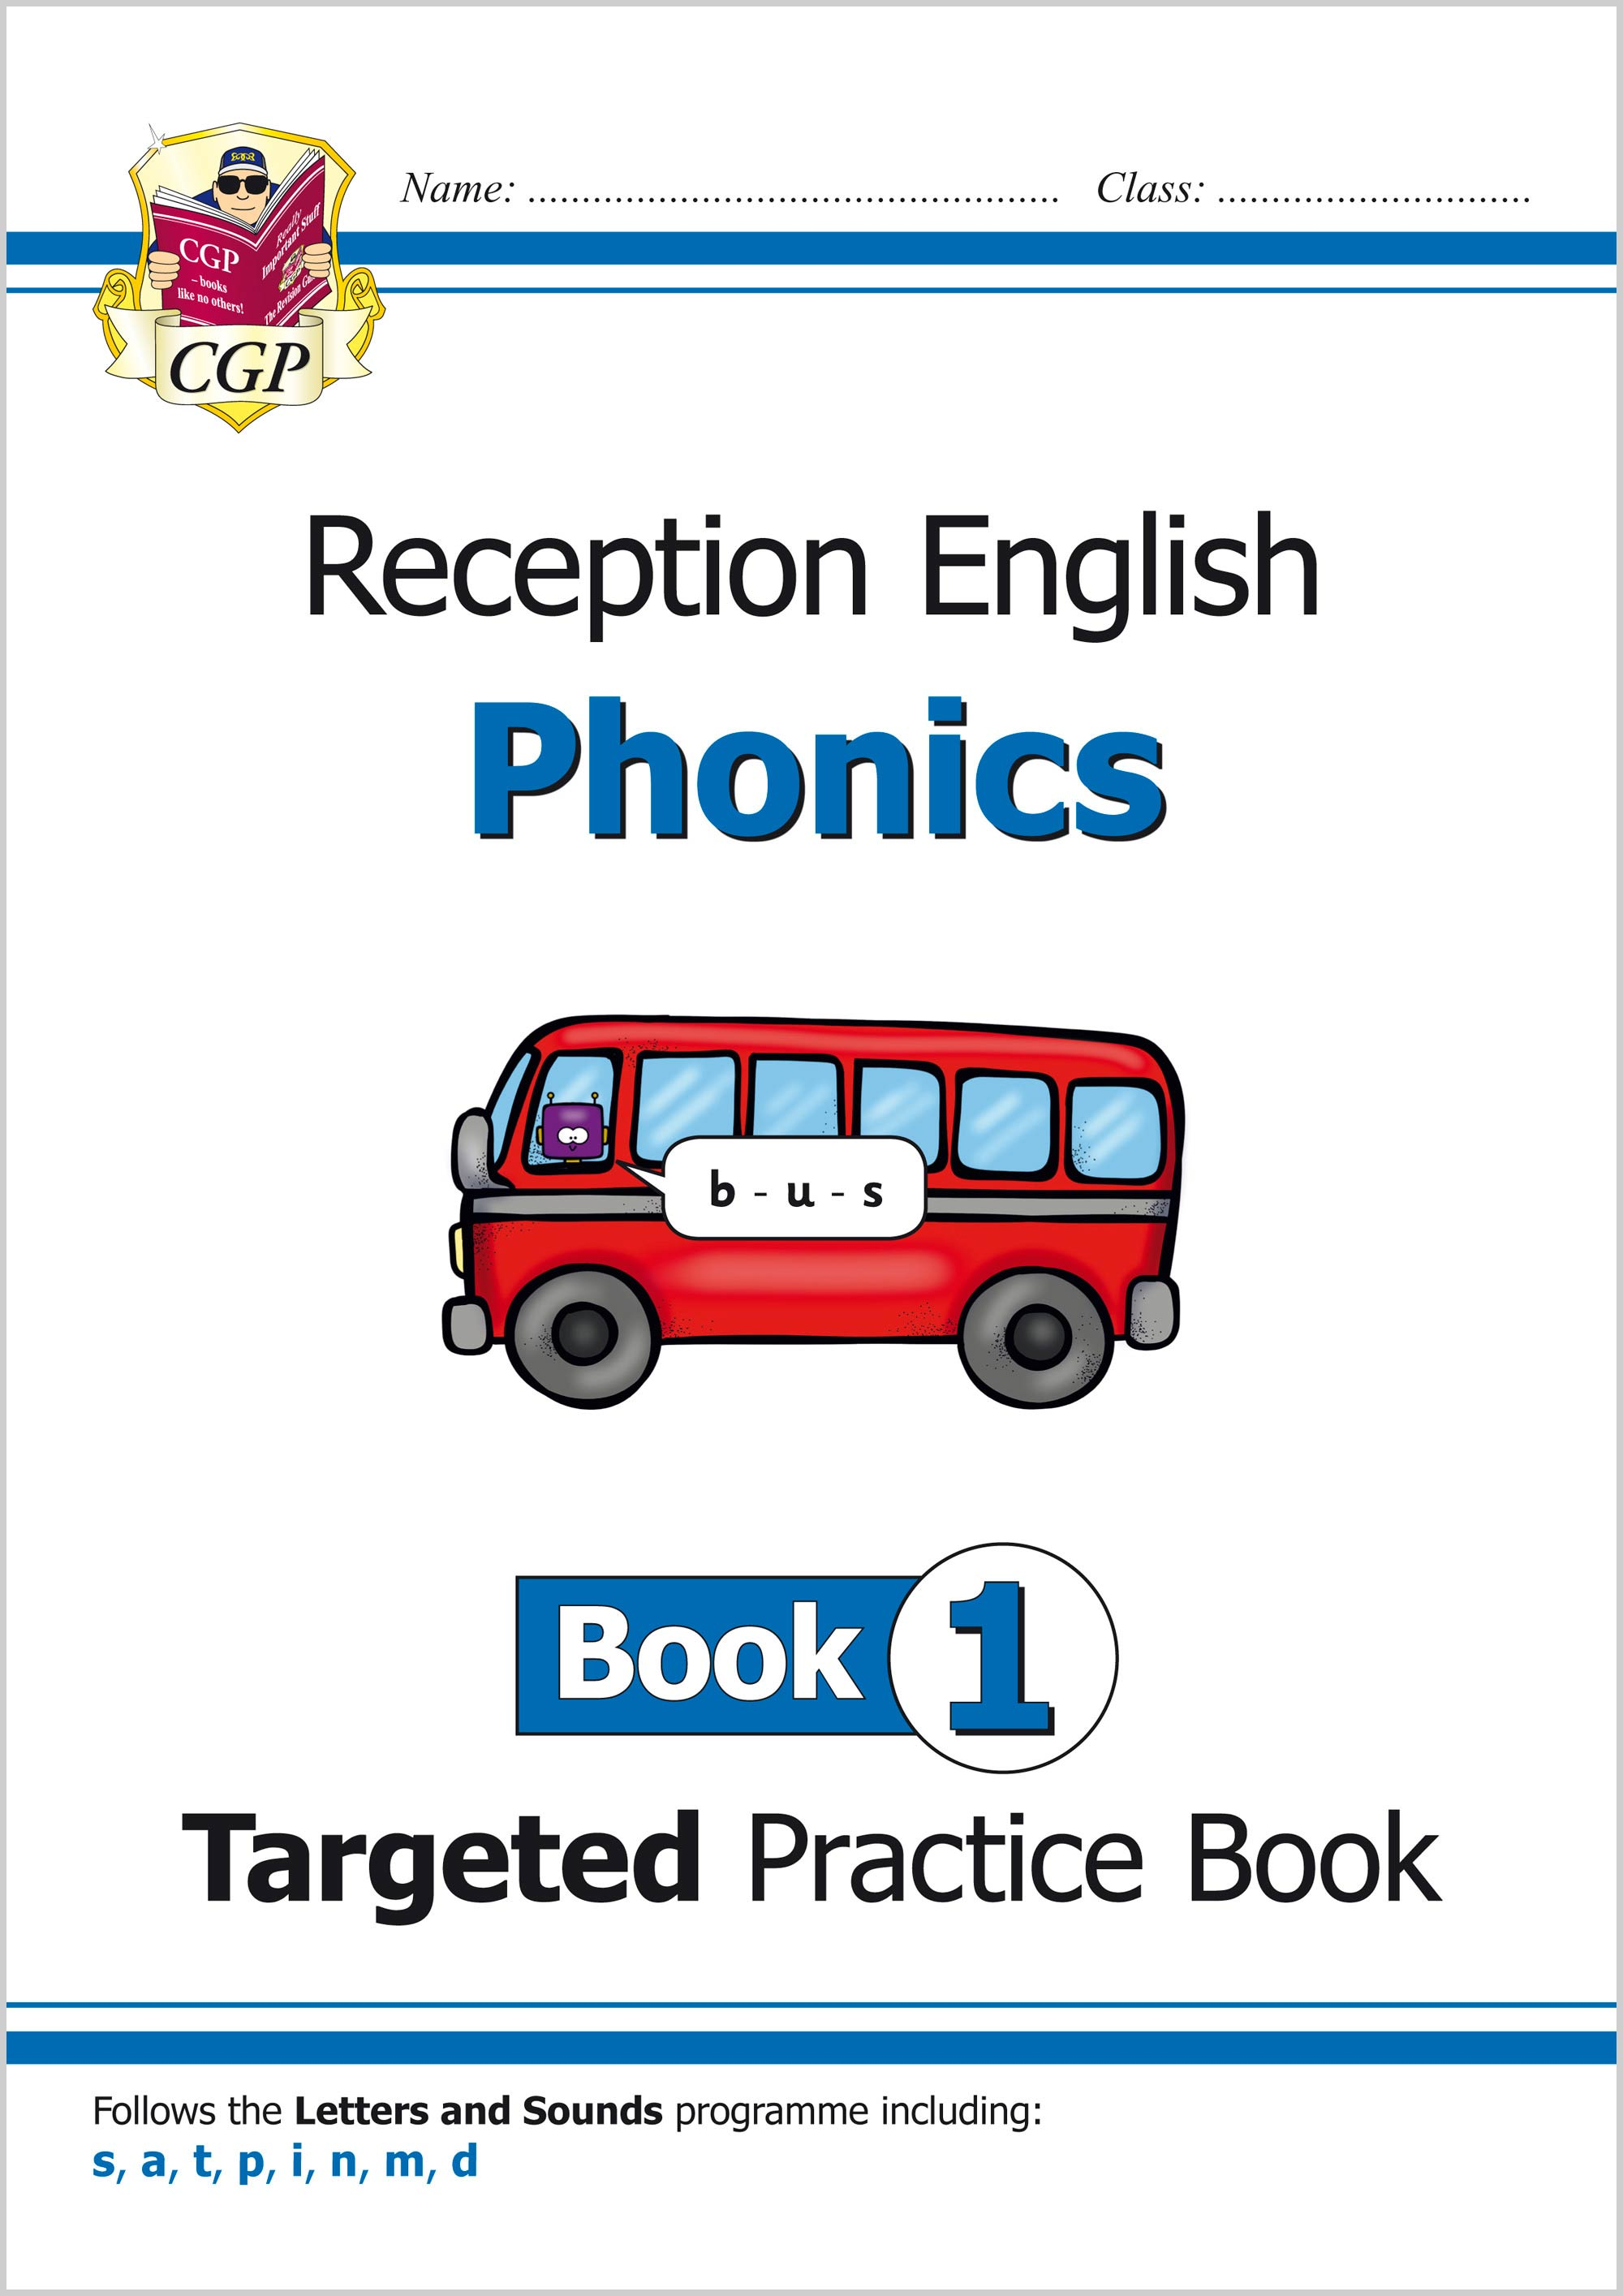 EROW111 - English Targeted Practice Book: Phonics - Reception Book 1